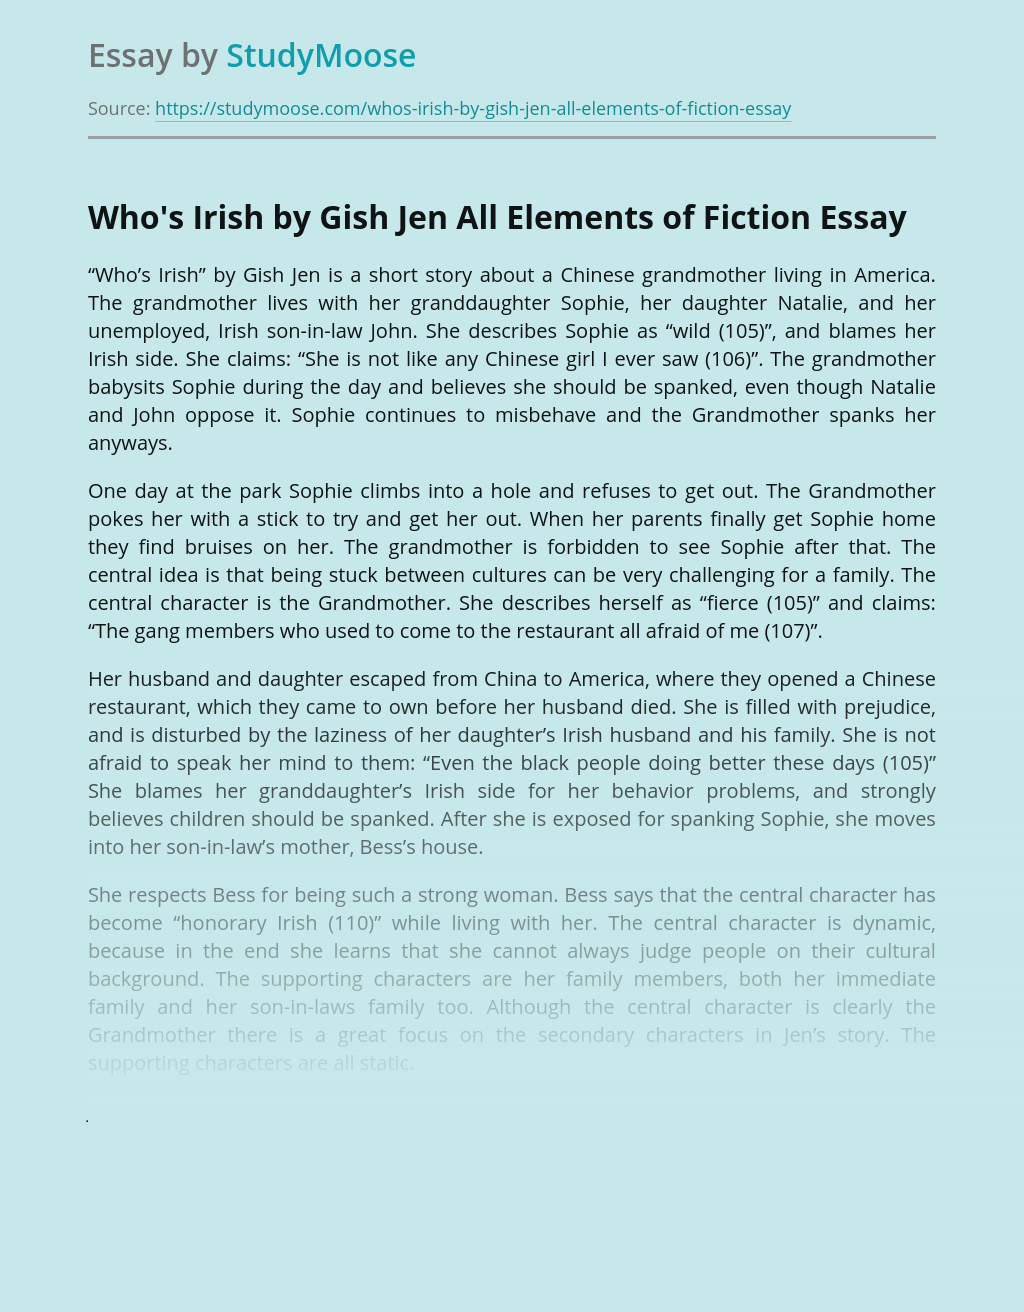 Who's Irish by Gish Jen All Elements of Fiction